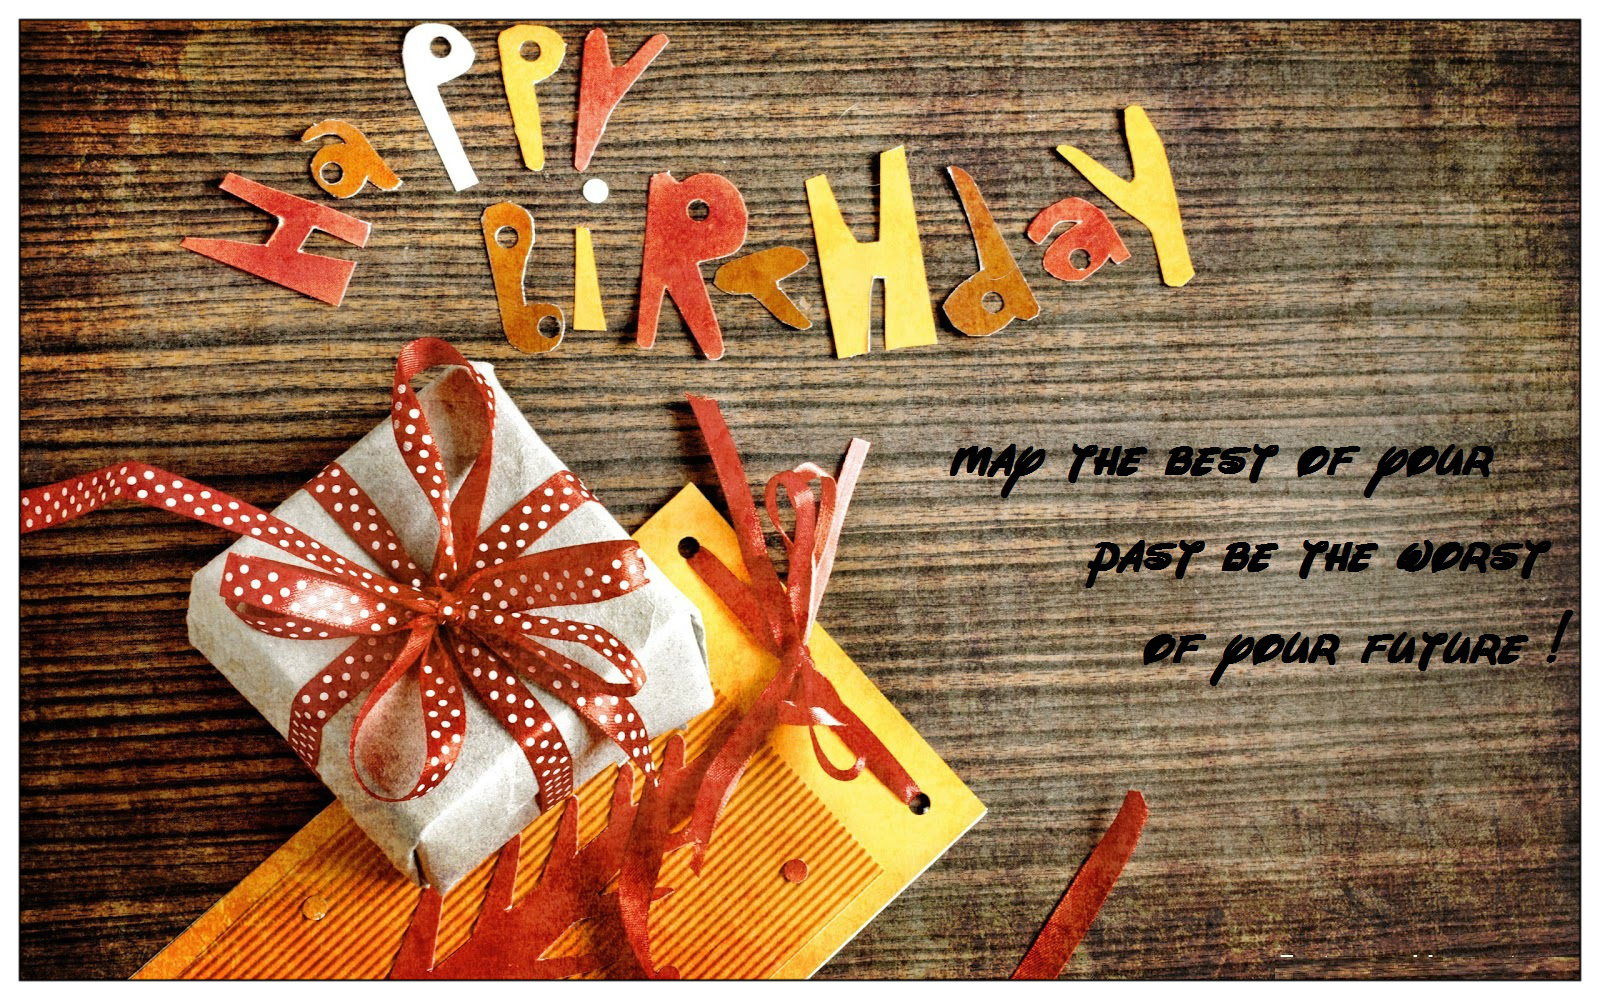 happy birthday quotes images hd ; happy-birthday-brother-in-law-greeting-hd-wallpapers